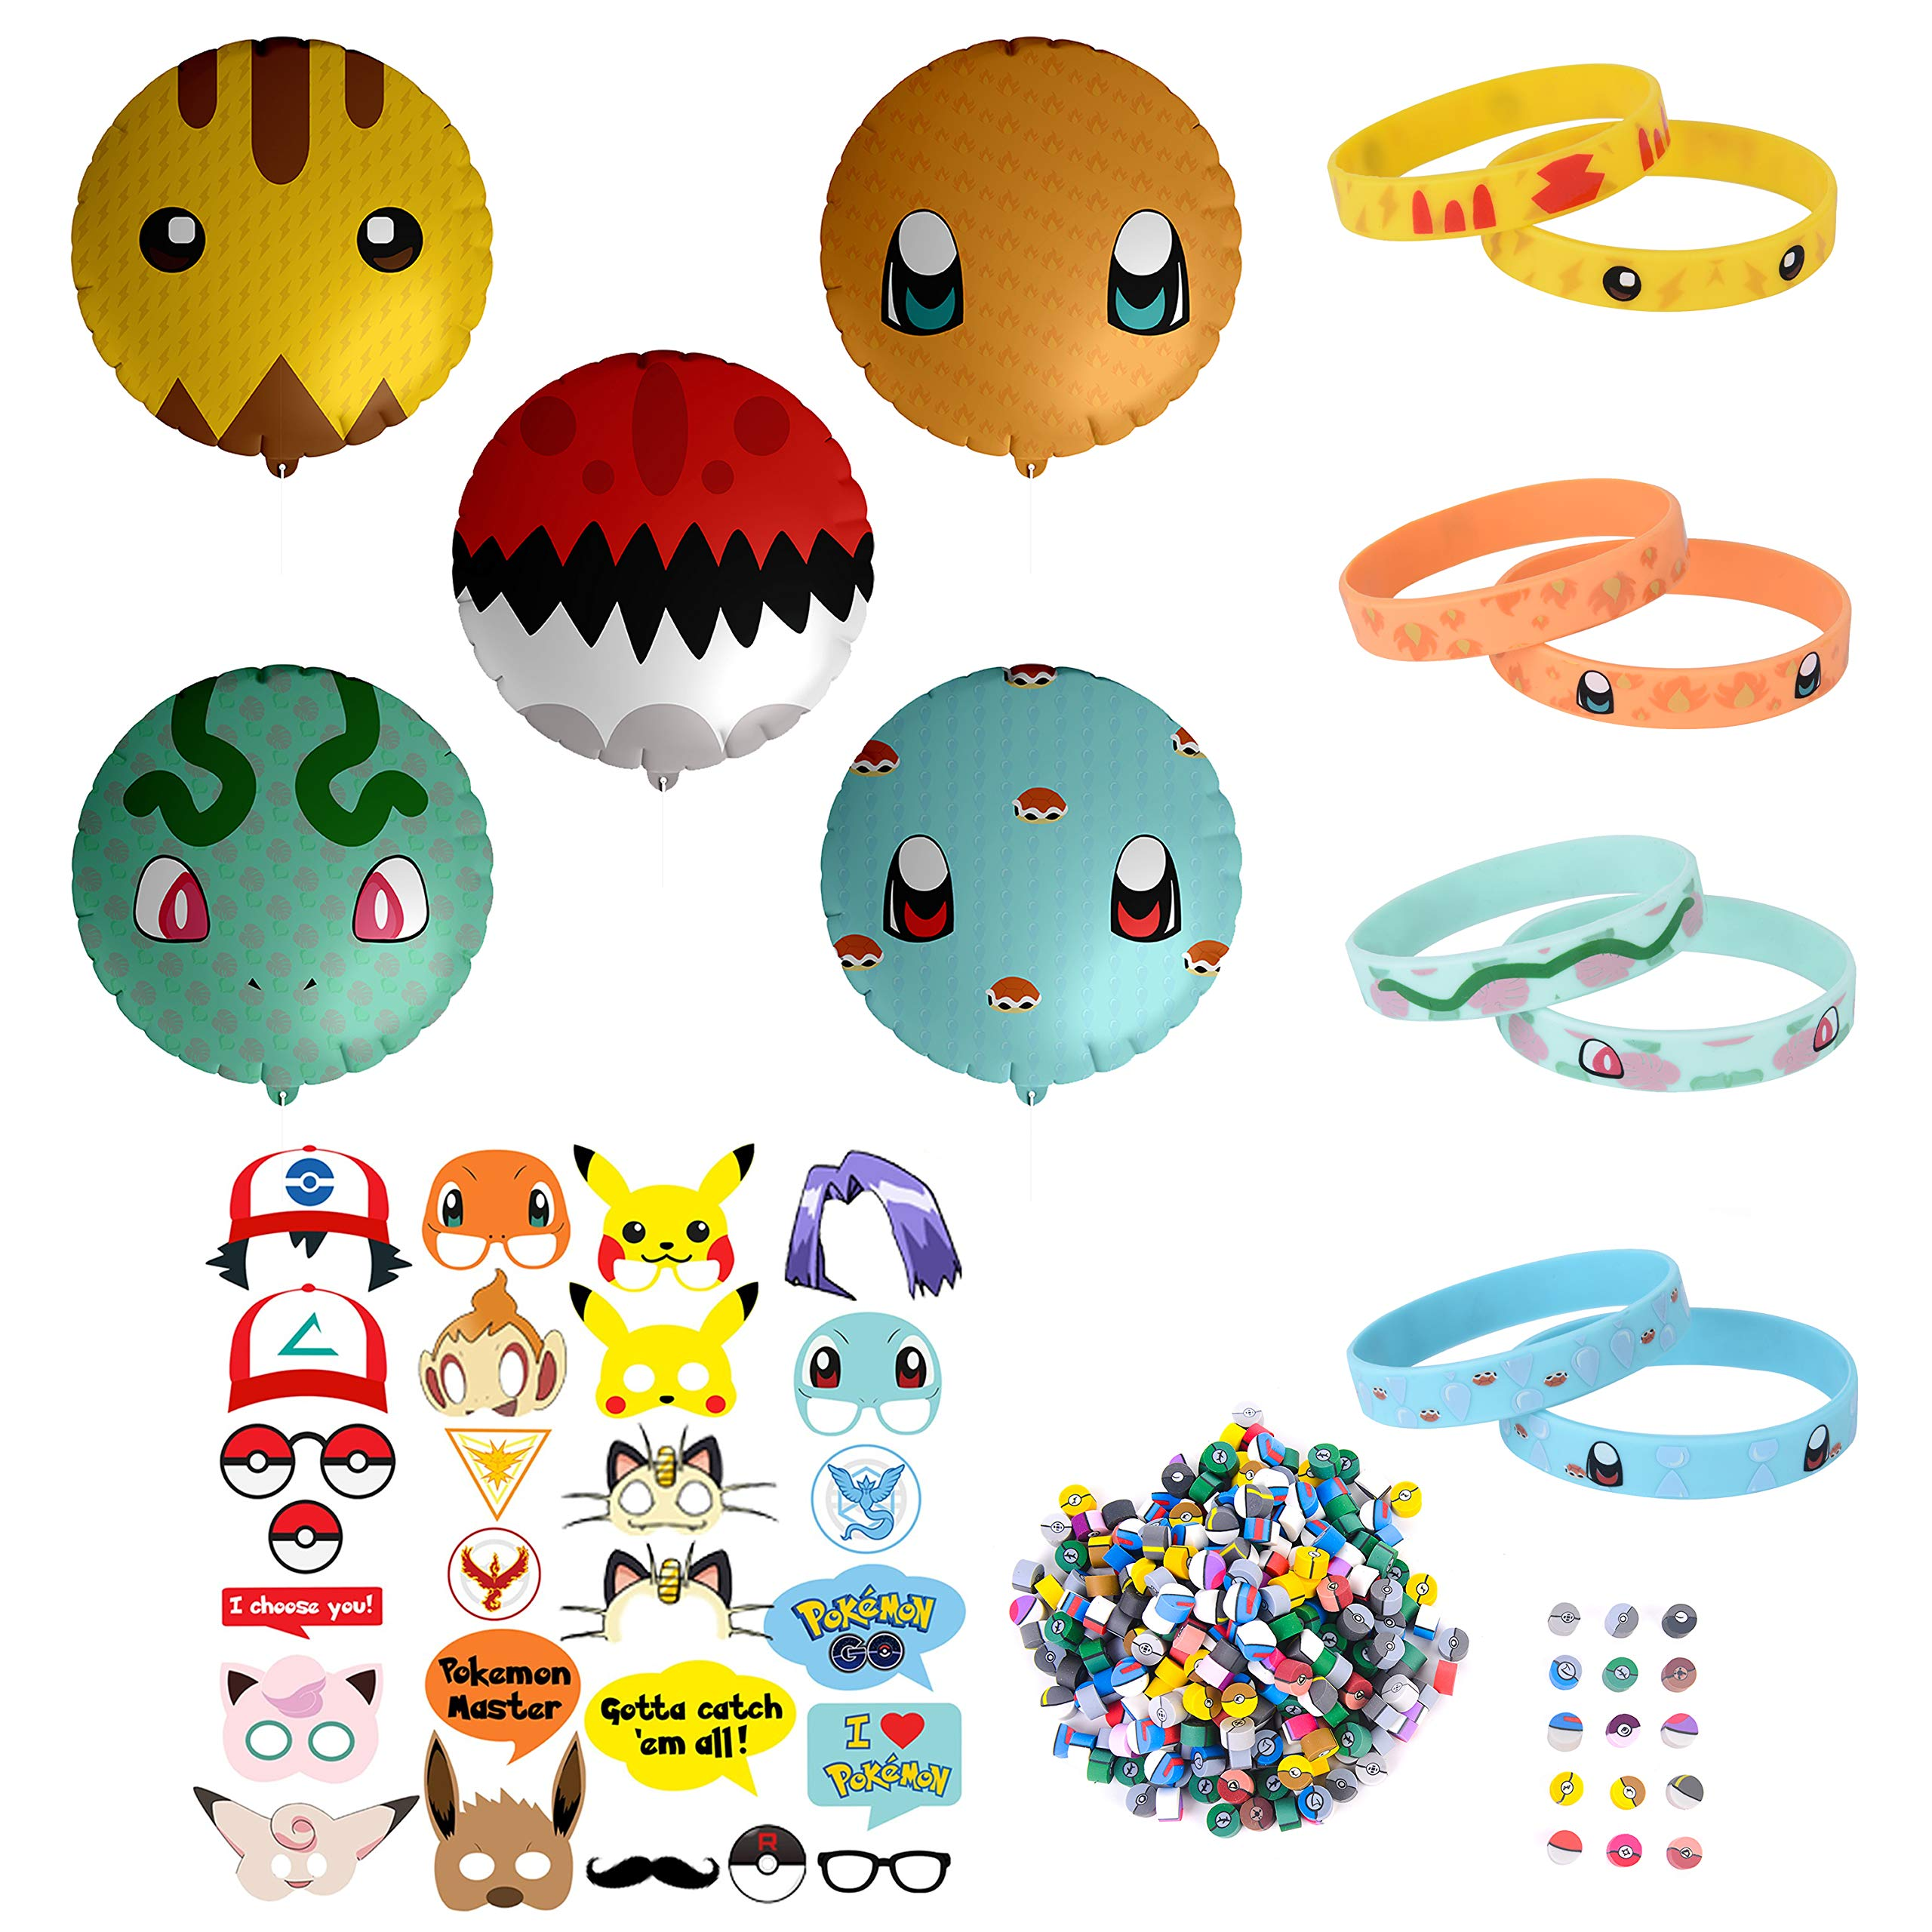 Totem World 343 pcs Party Favor Supply Mega Pack for Pokemon Theme Party - Includes Pokemon Inspired Balloons, Bracelets, Erasers, and Props - Perfect Stocking Stuffer